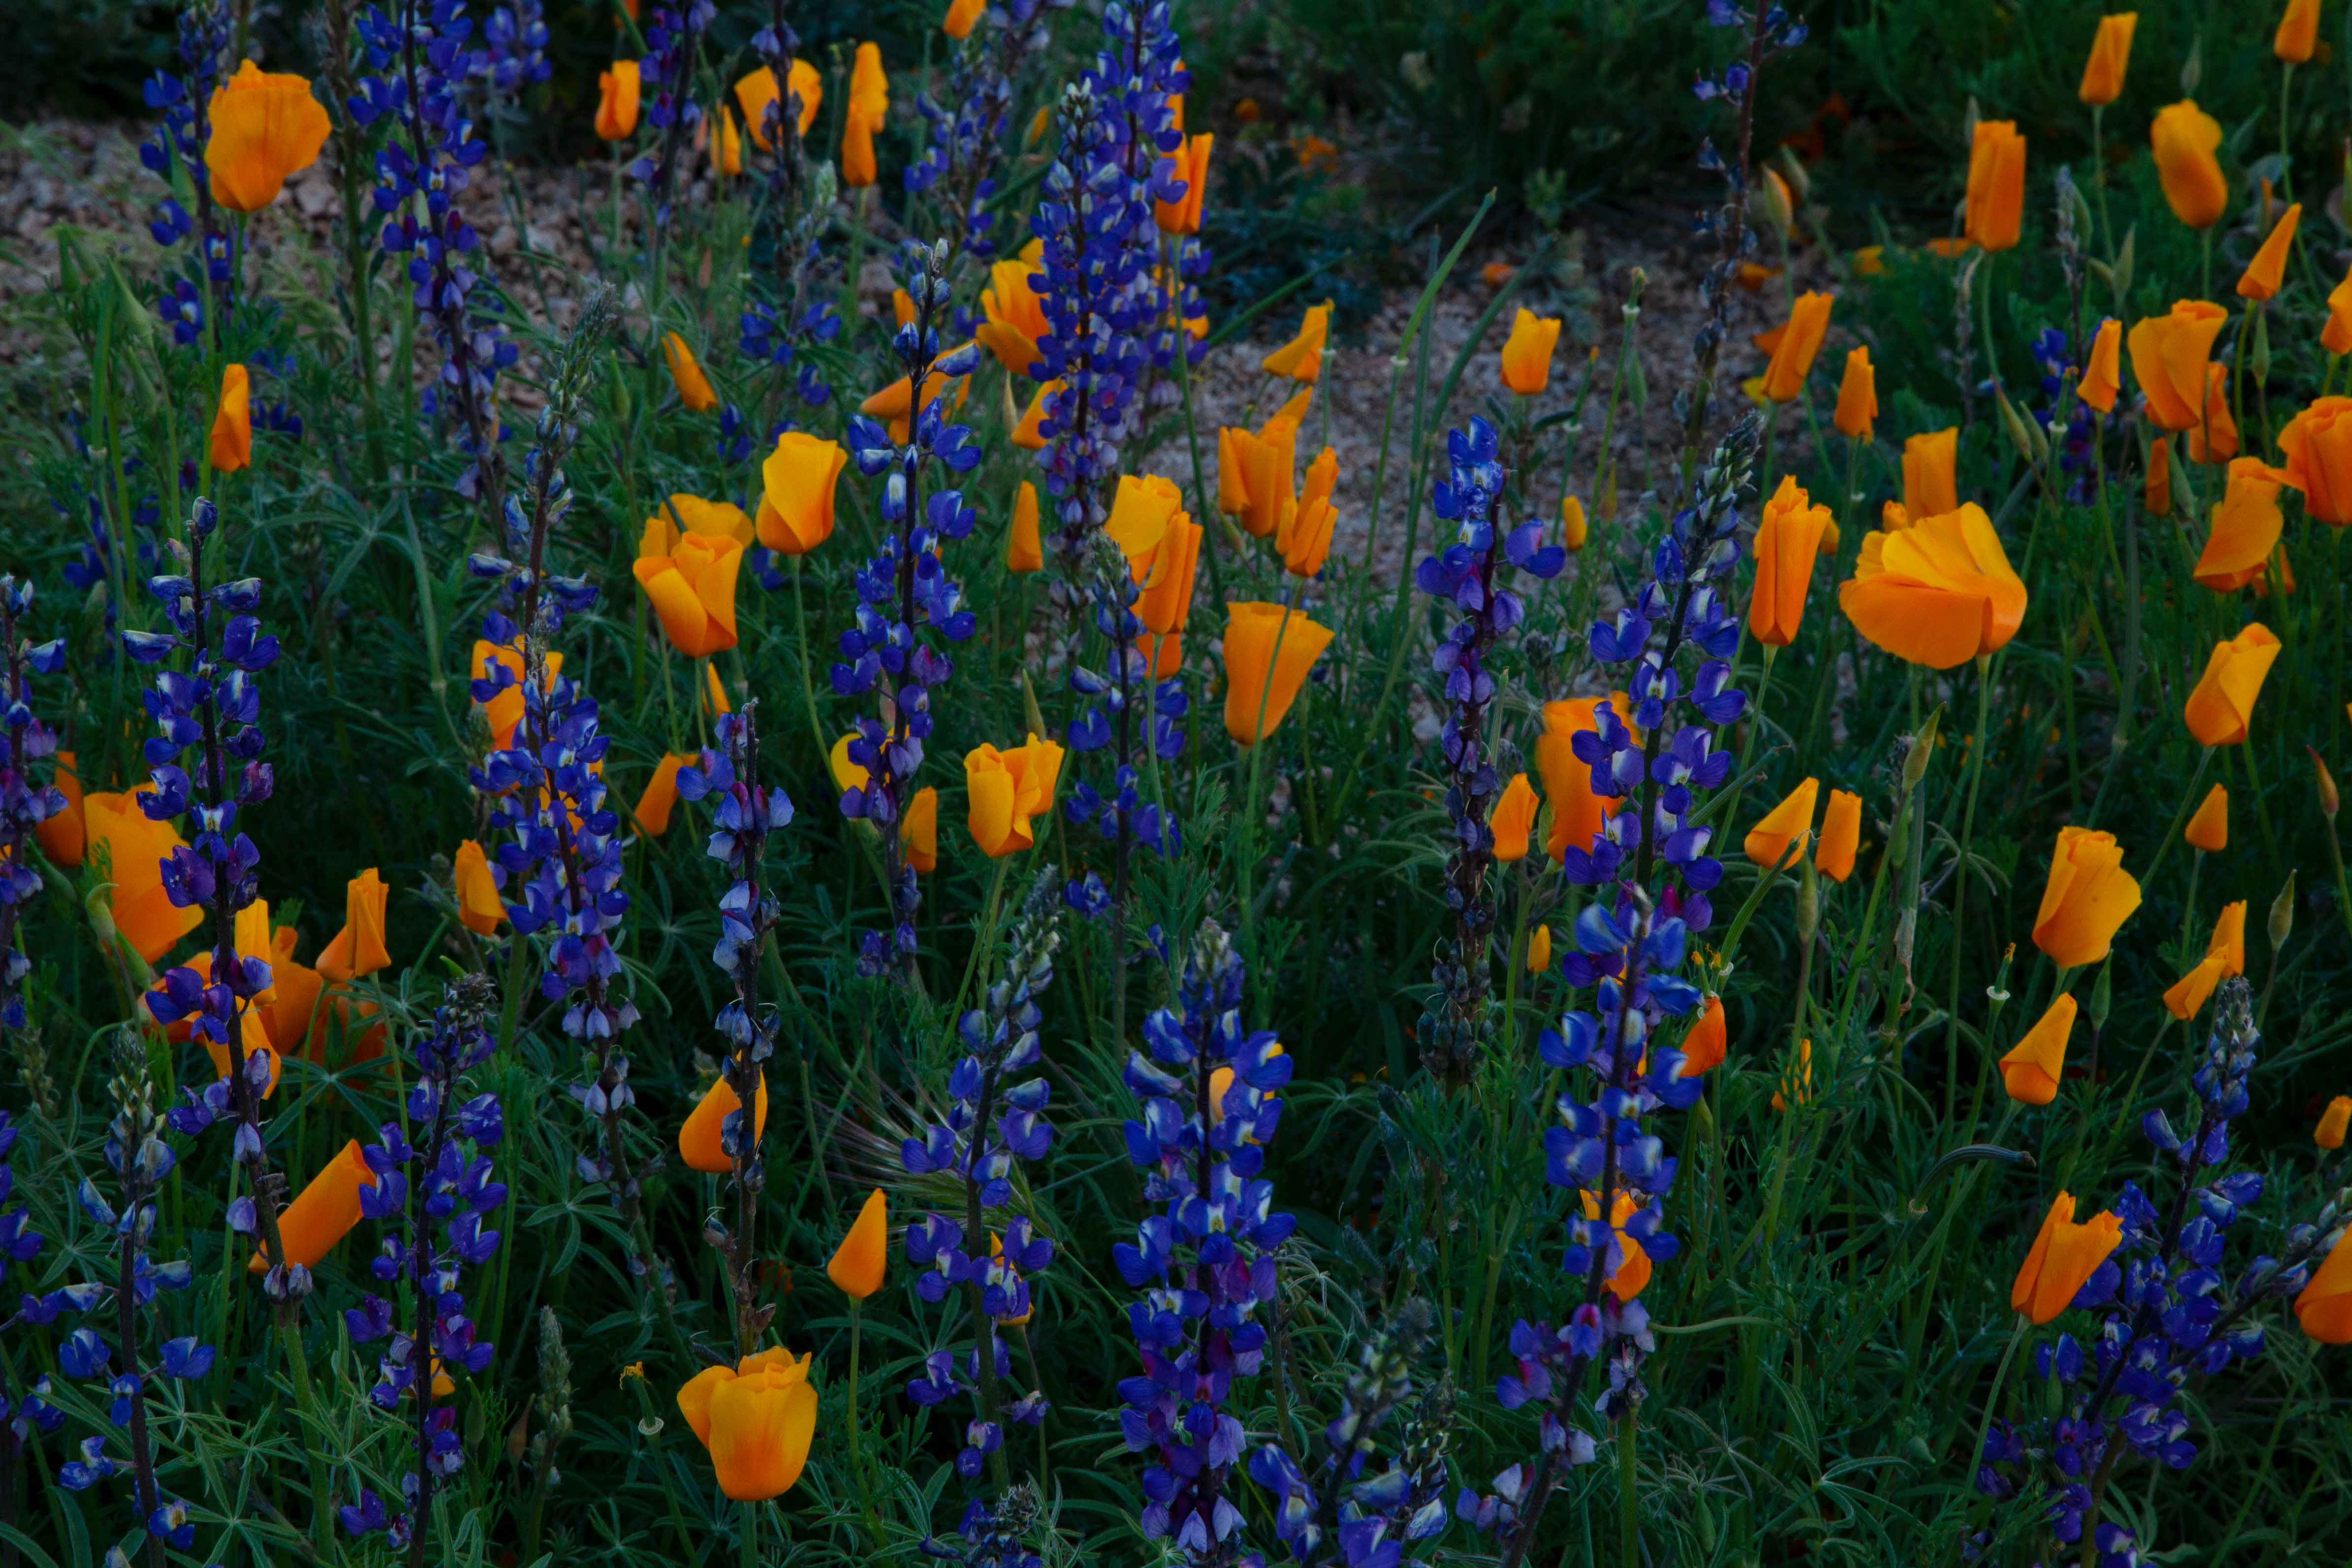 Desert wildflowers (Lupins and Mexican Goldpoppies) in spring near Bartlett Lake in the Arizona Sonoran Desert.